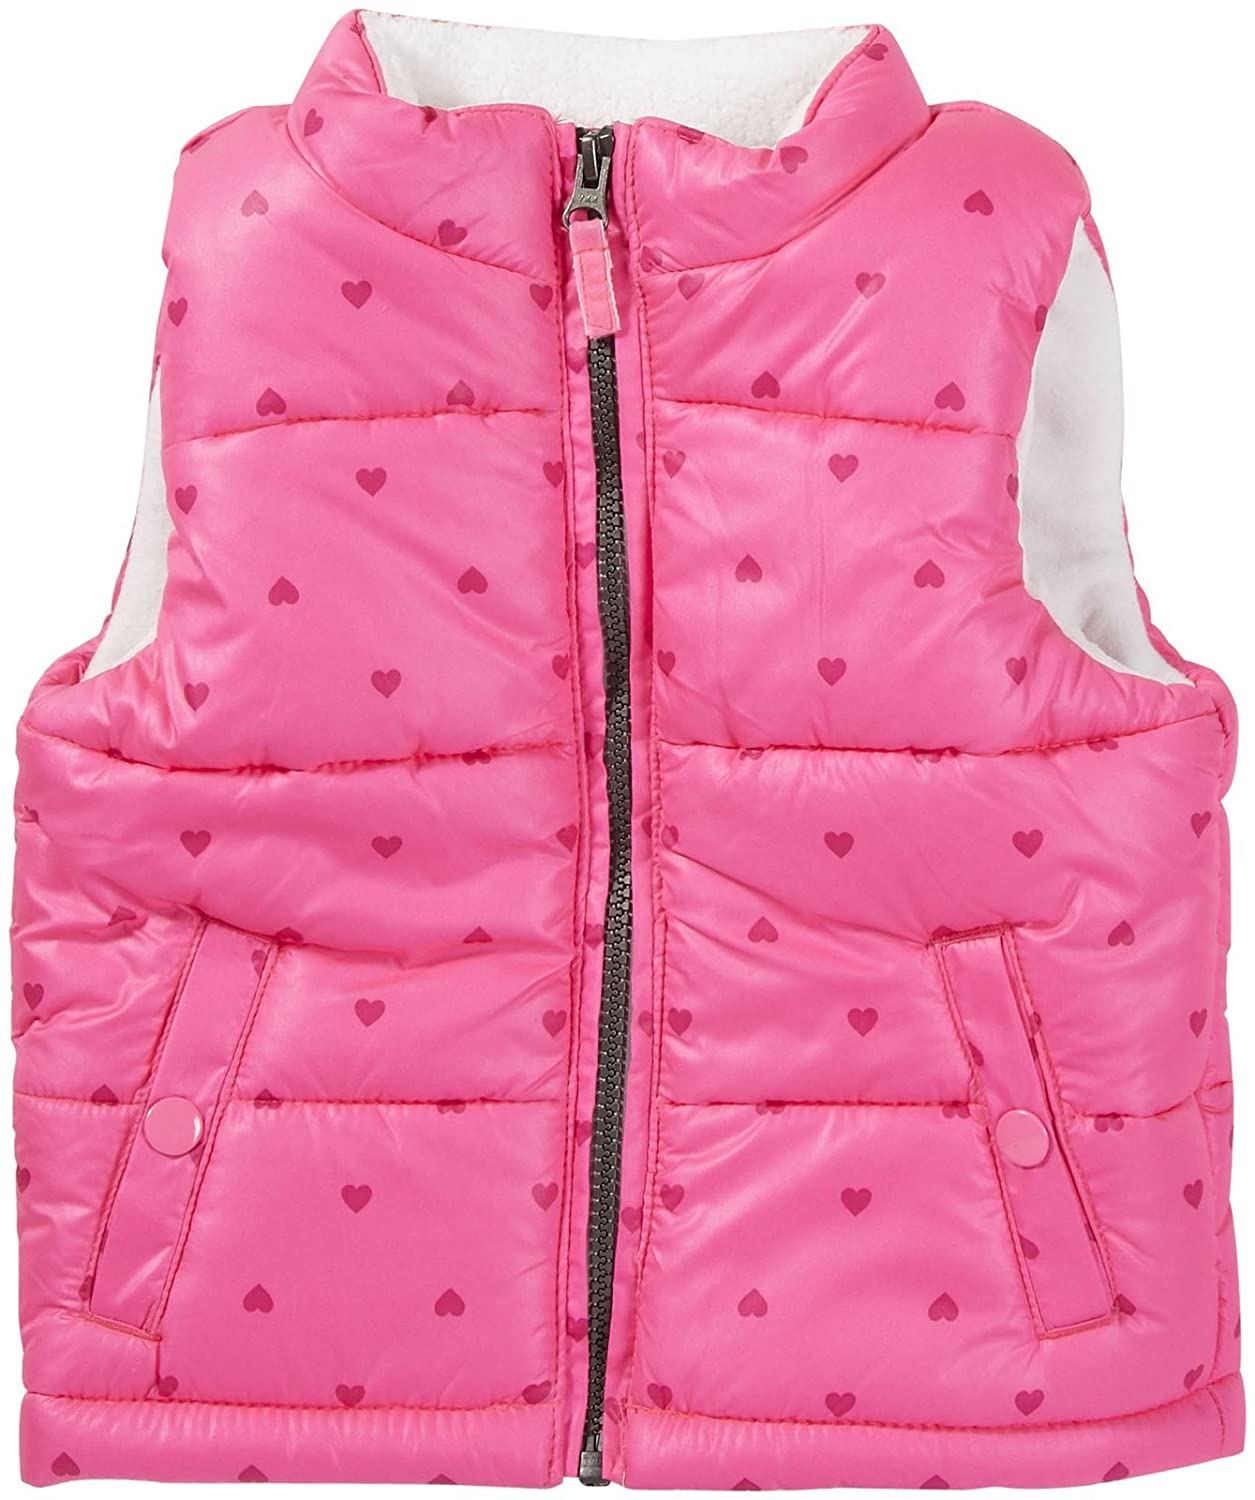 Carter's Little Girls' Quilted Vest Pink)